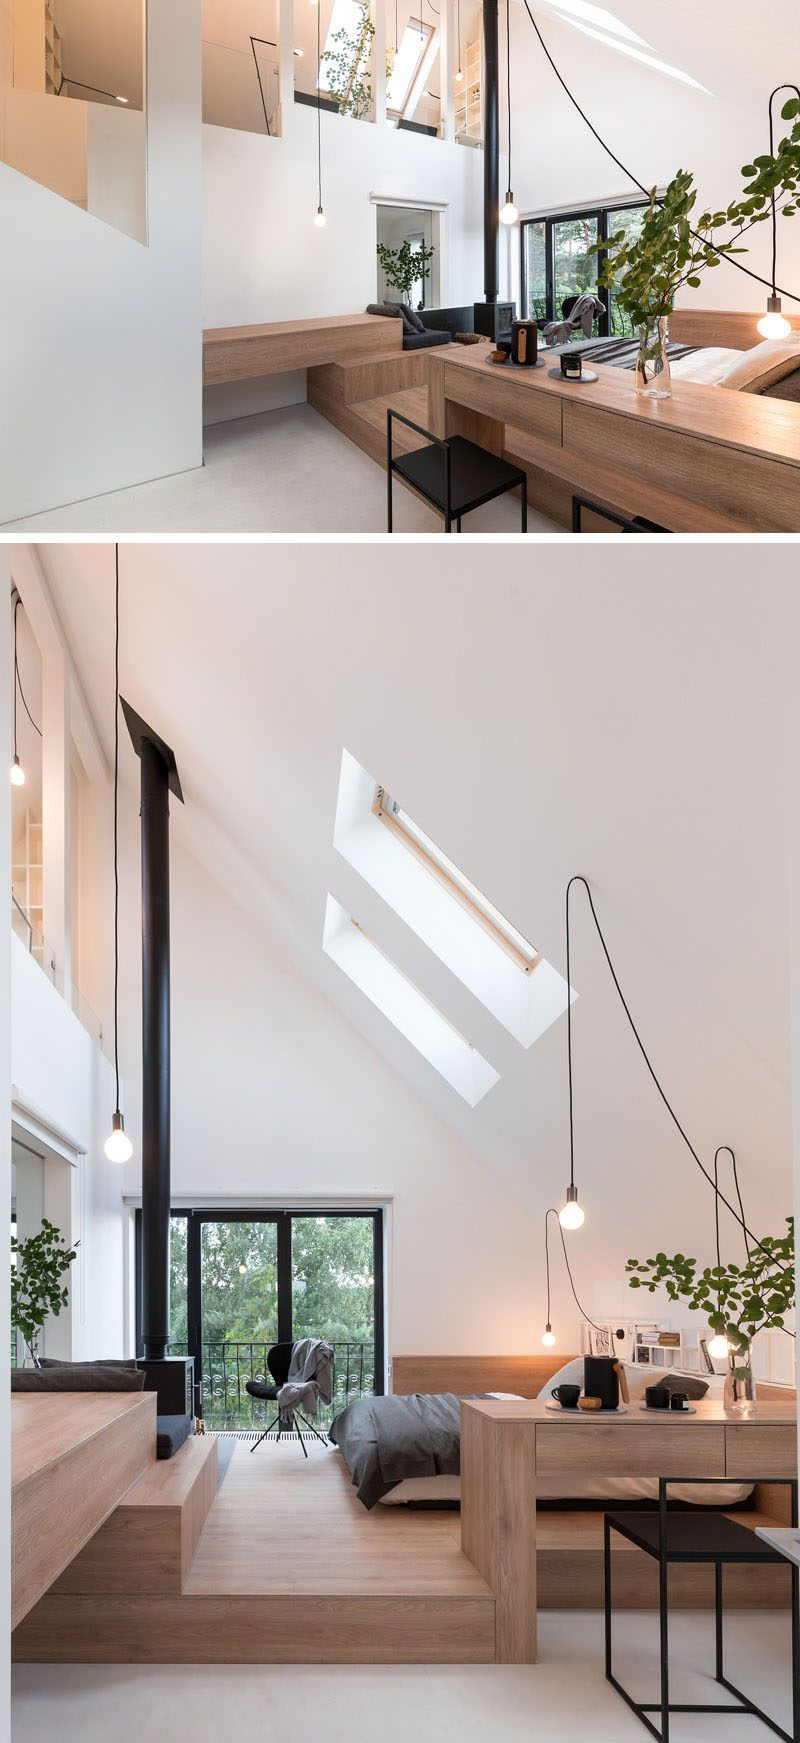 Architecture and interior design firm ruetemple have transformed the attic of a house in moscow russia and made it into a private and relaxing modern